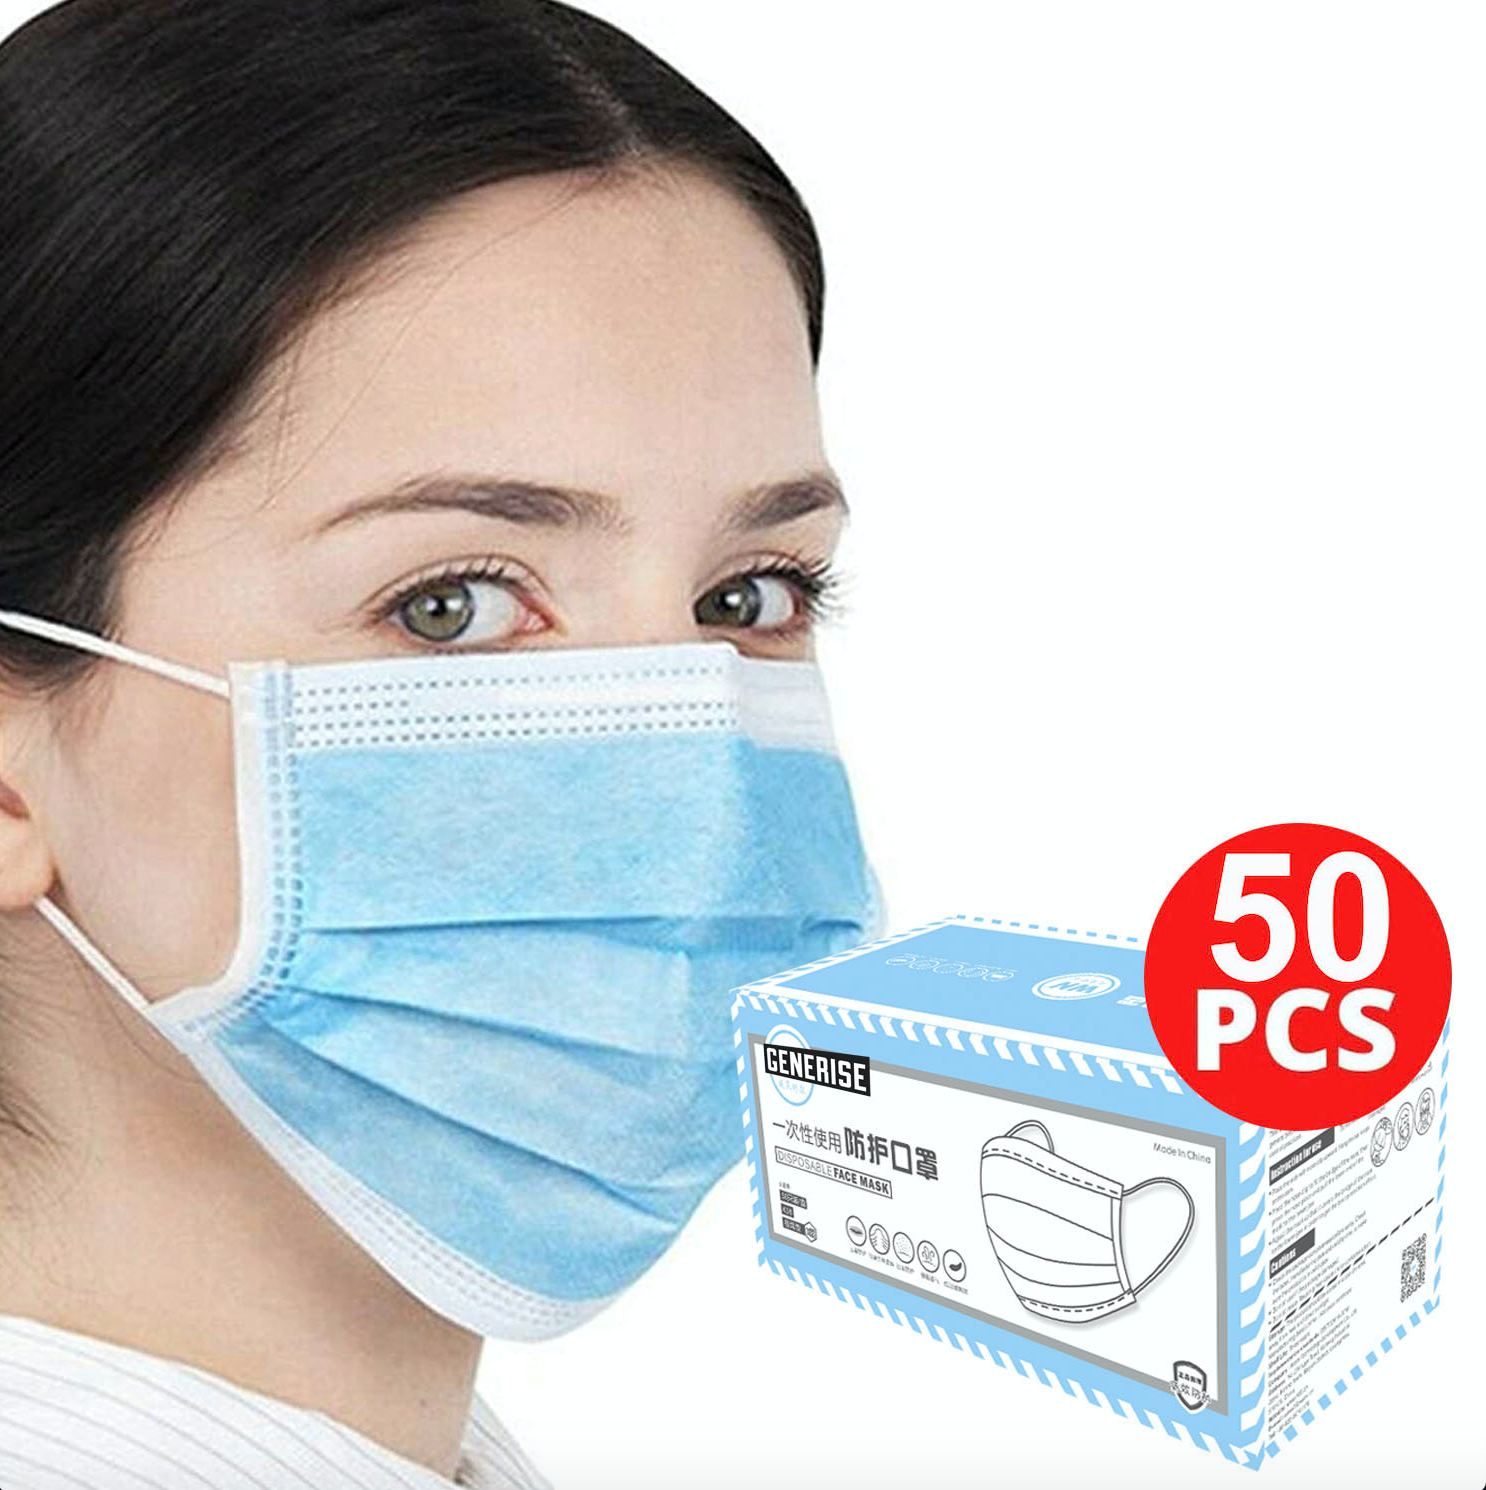 Generise 3 Ply Disposable Face Masks - Blue 50pcs WN, Work Safety Protective Equipment by My Wholesale Warehouse